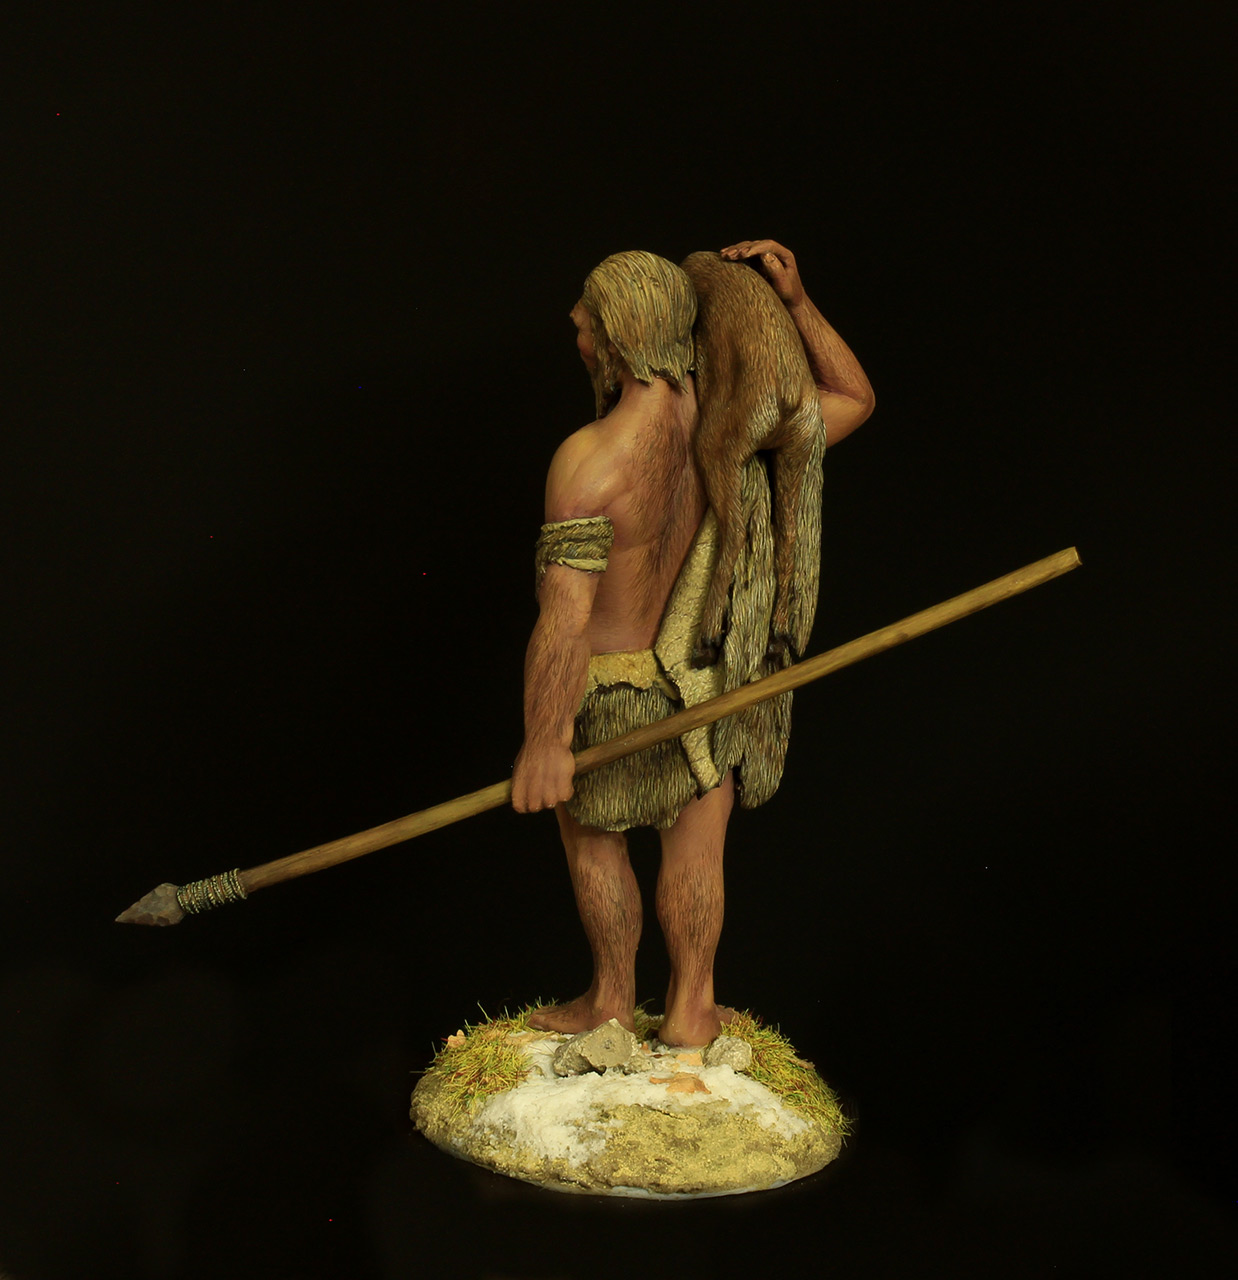 Figures: The Neanderthal, photo #5